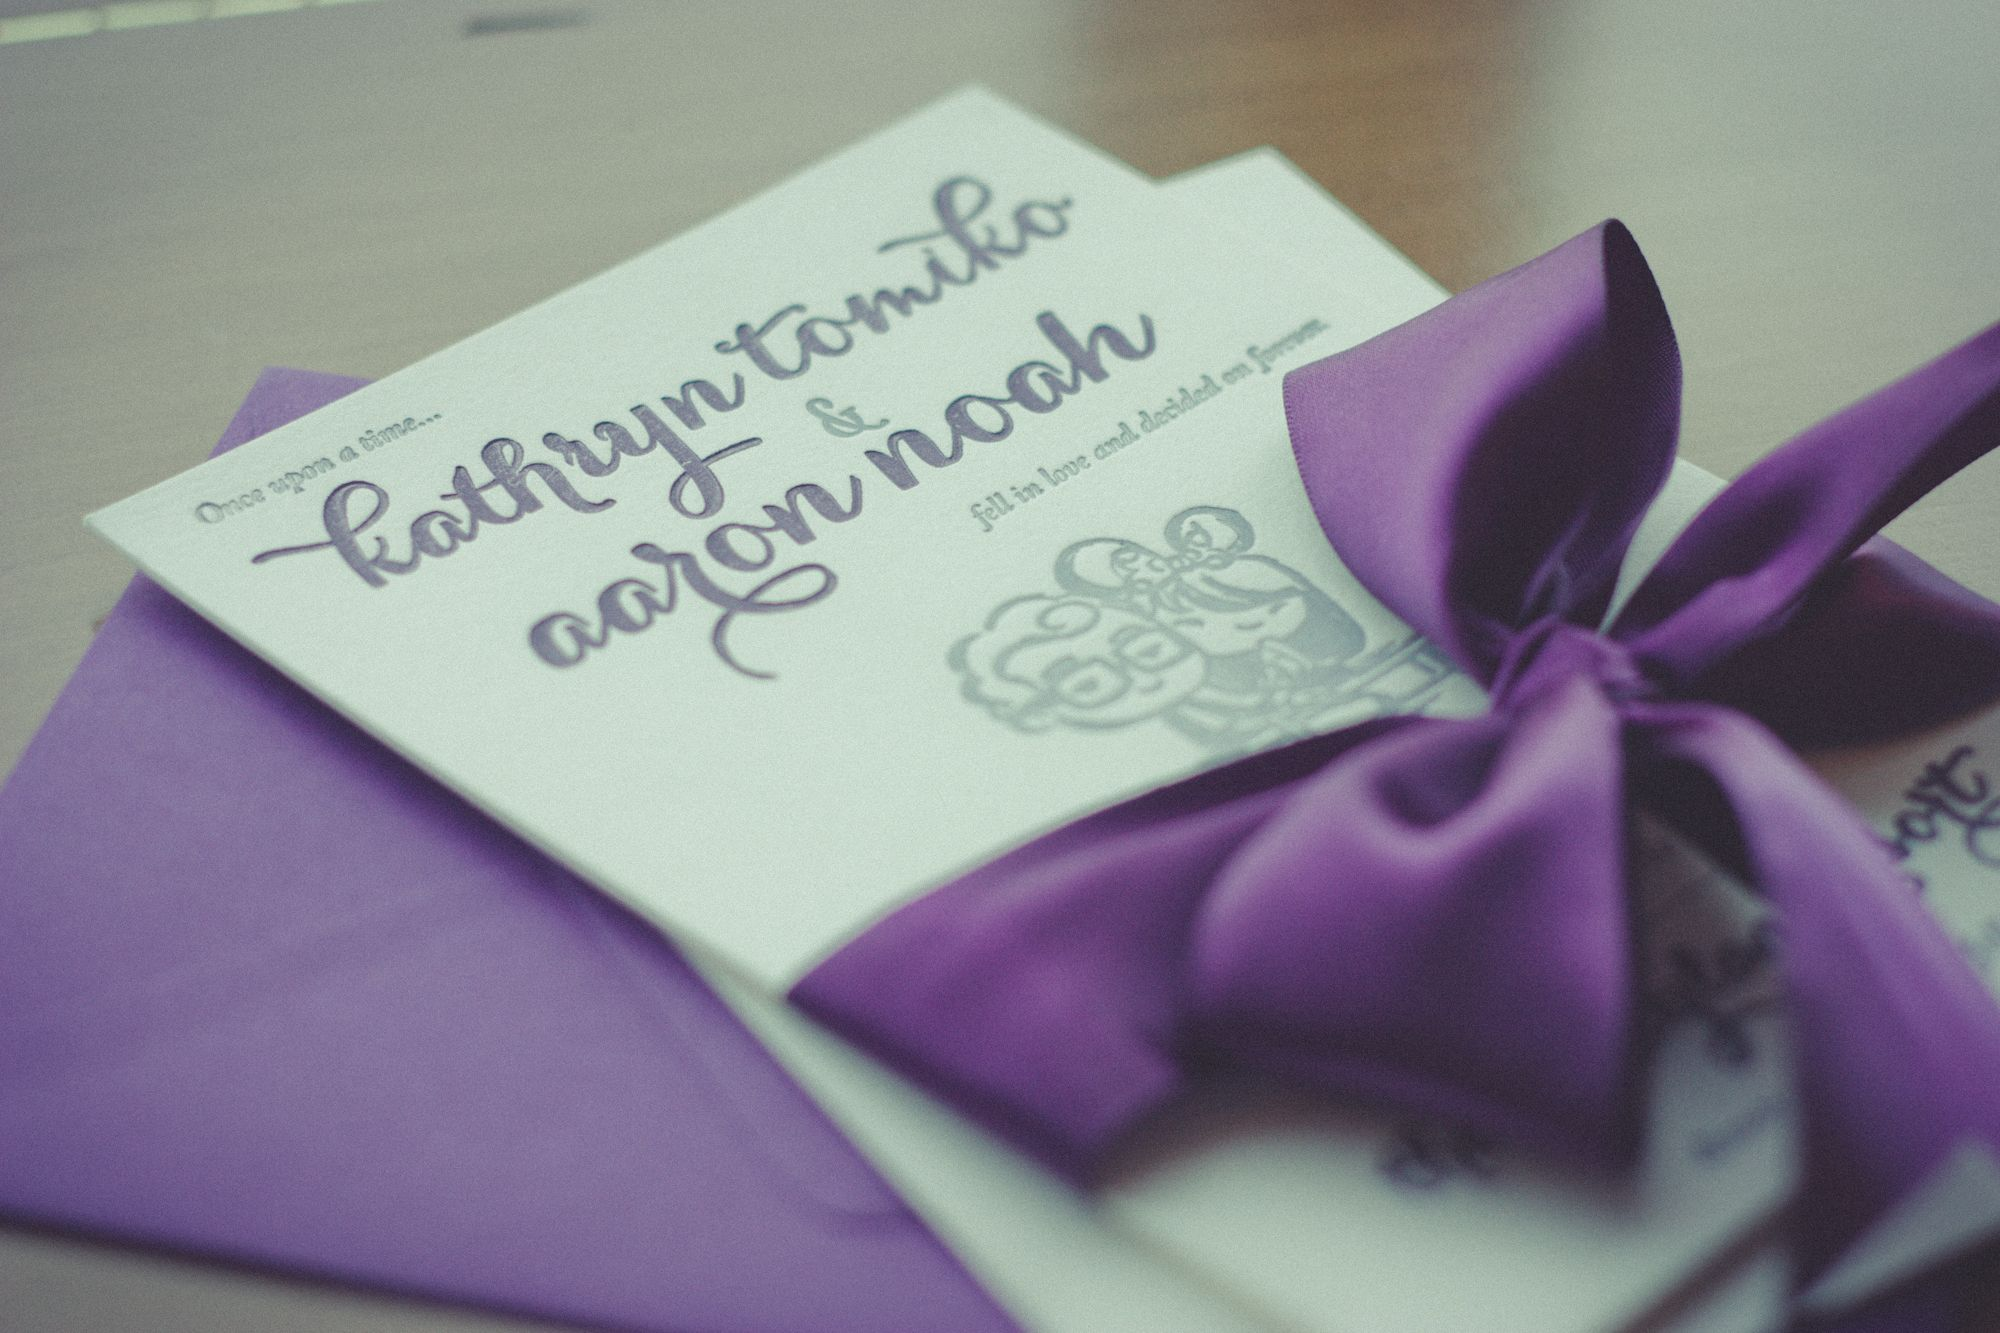 Up Themed Wedding Invitations: These Up-inspired Invitations Are As Sweet As Can Be